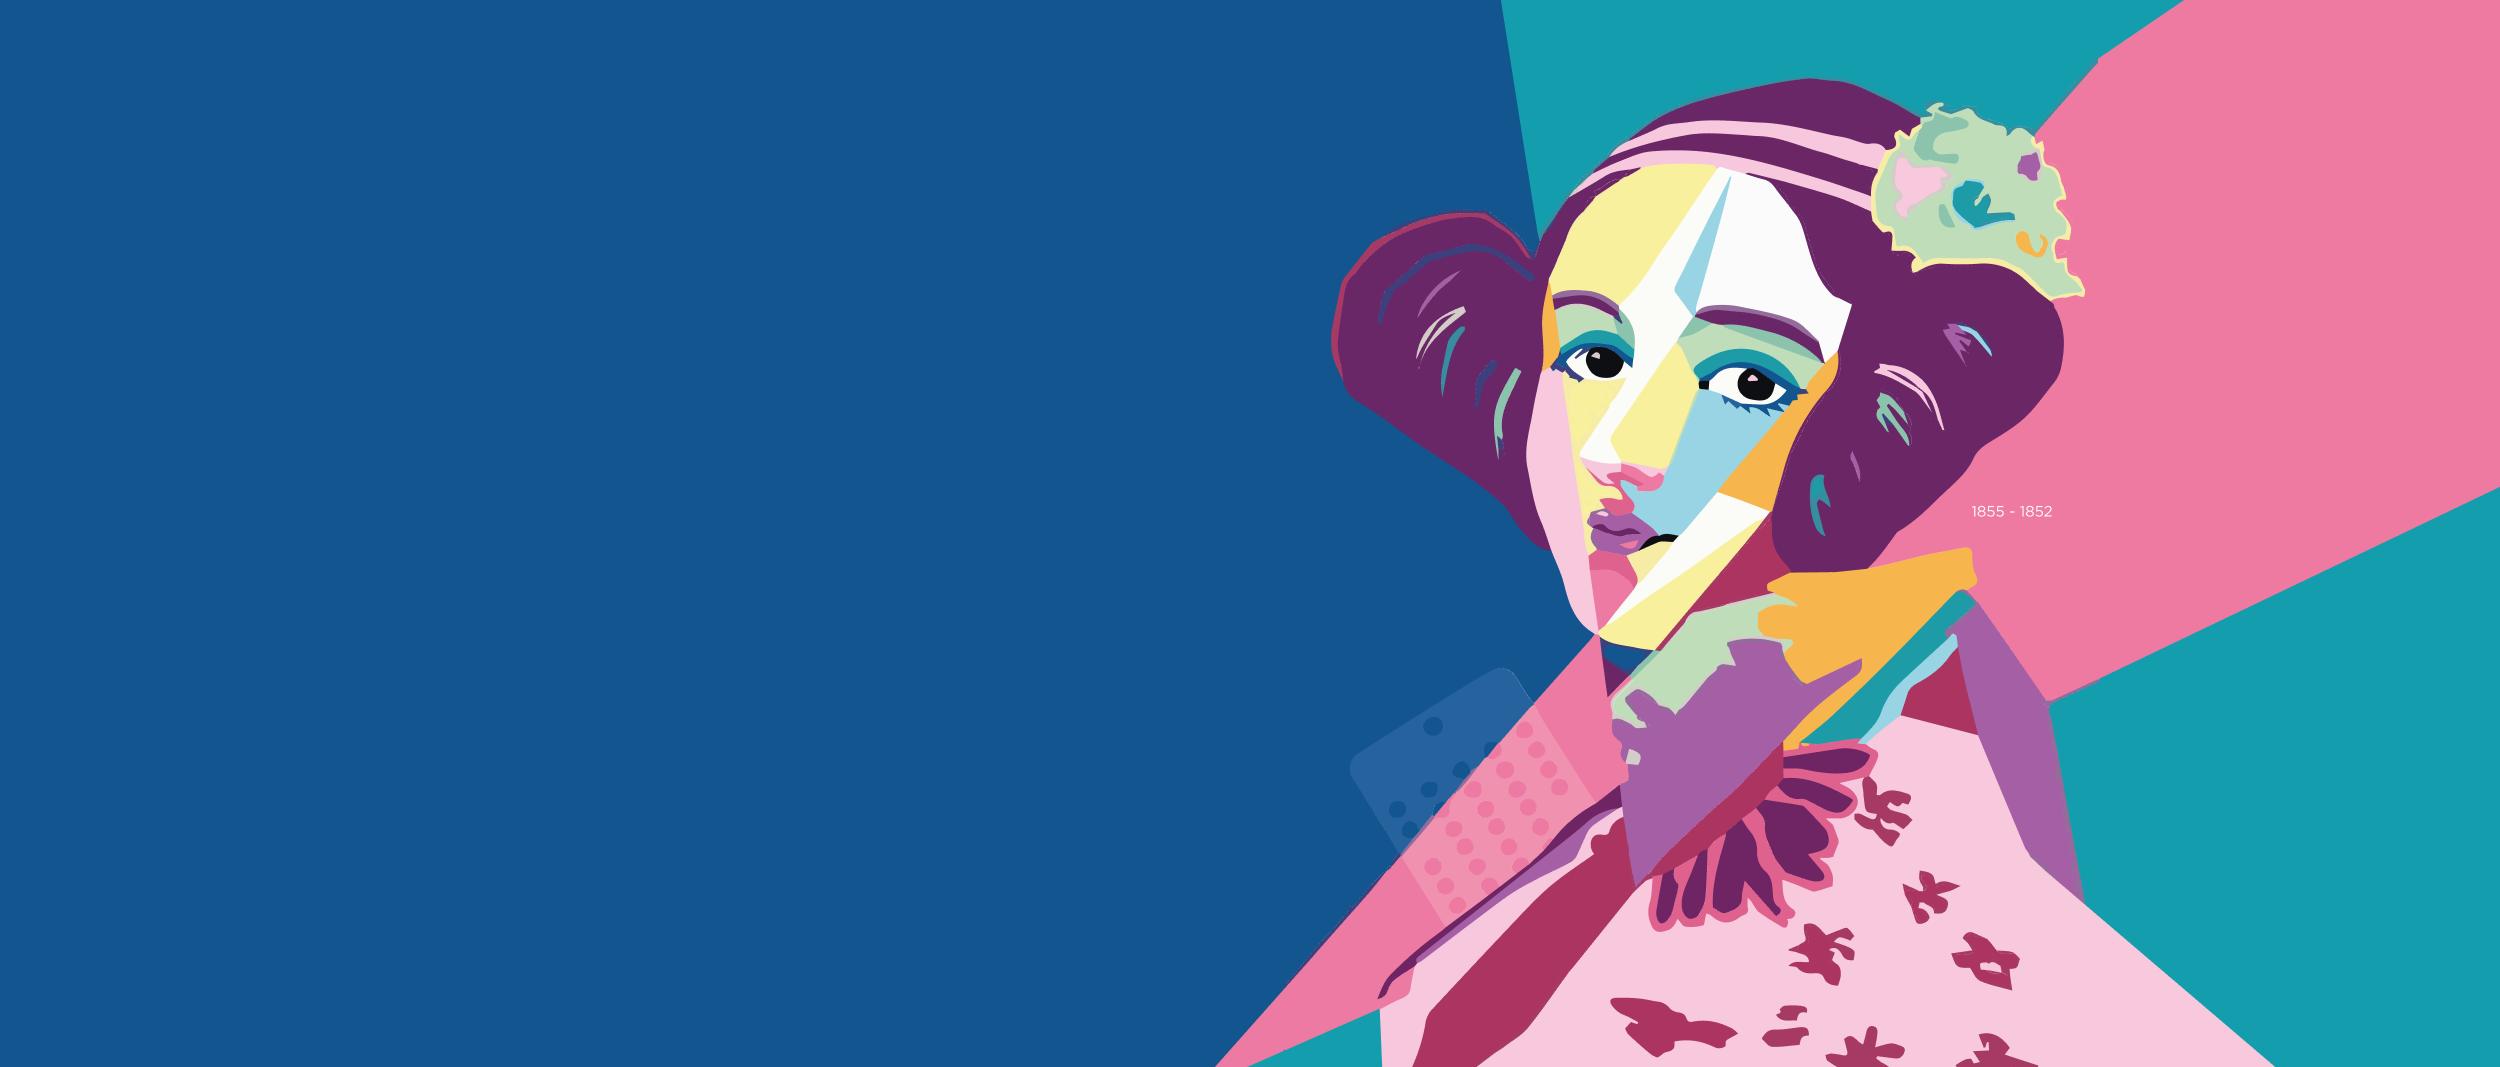 Ada Lovelace Day - From Her: The World's First Computer Program